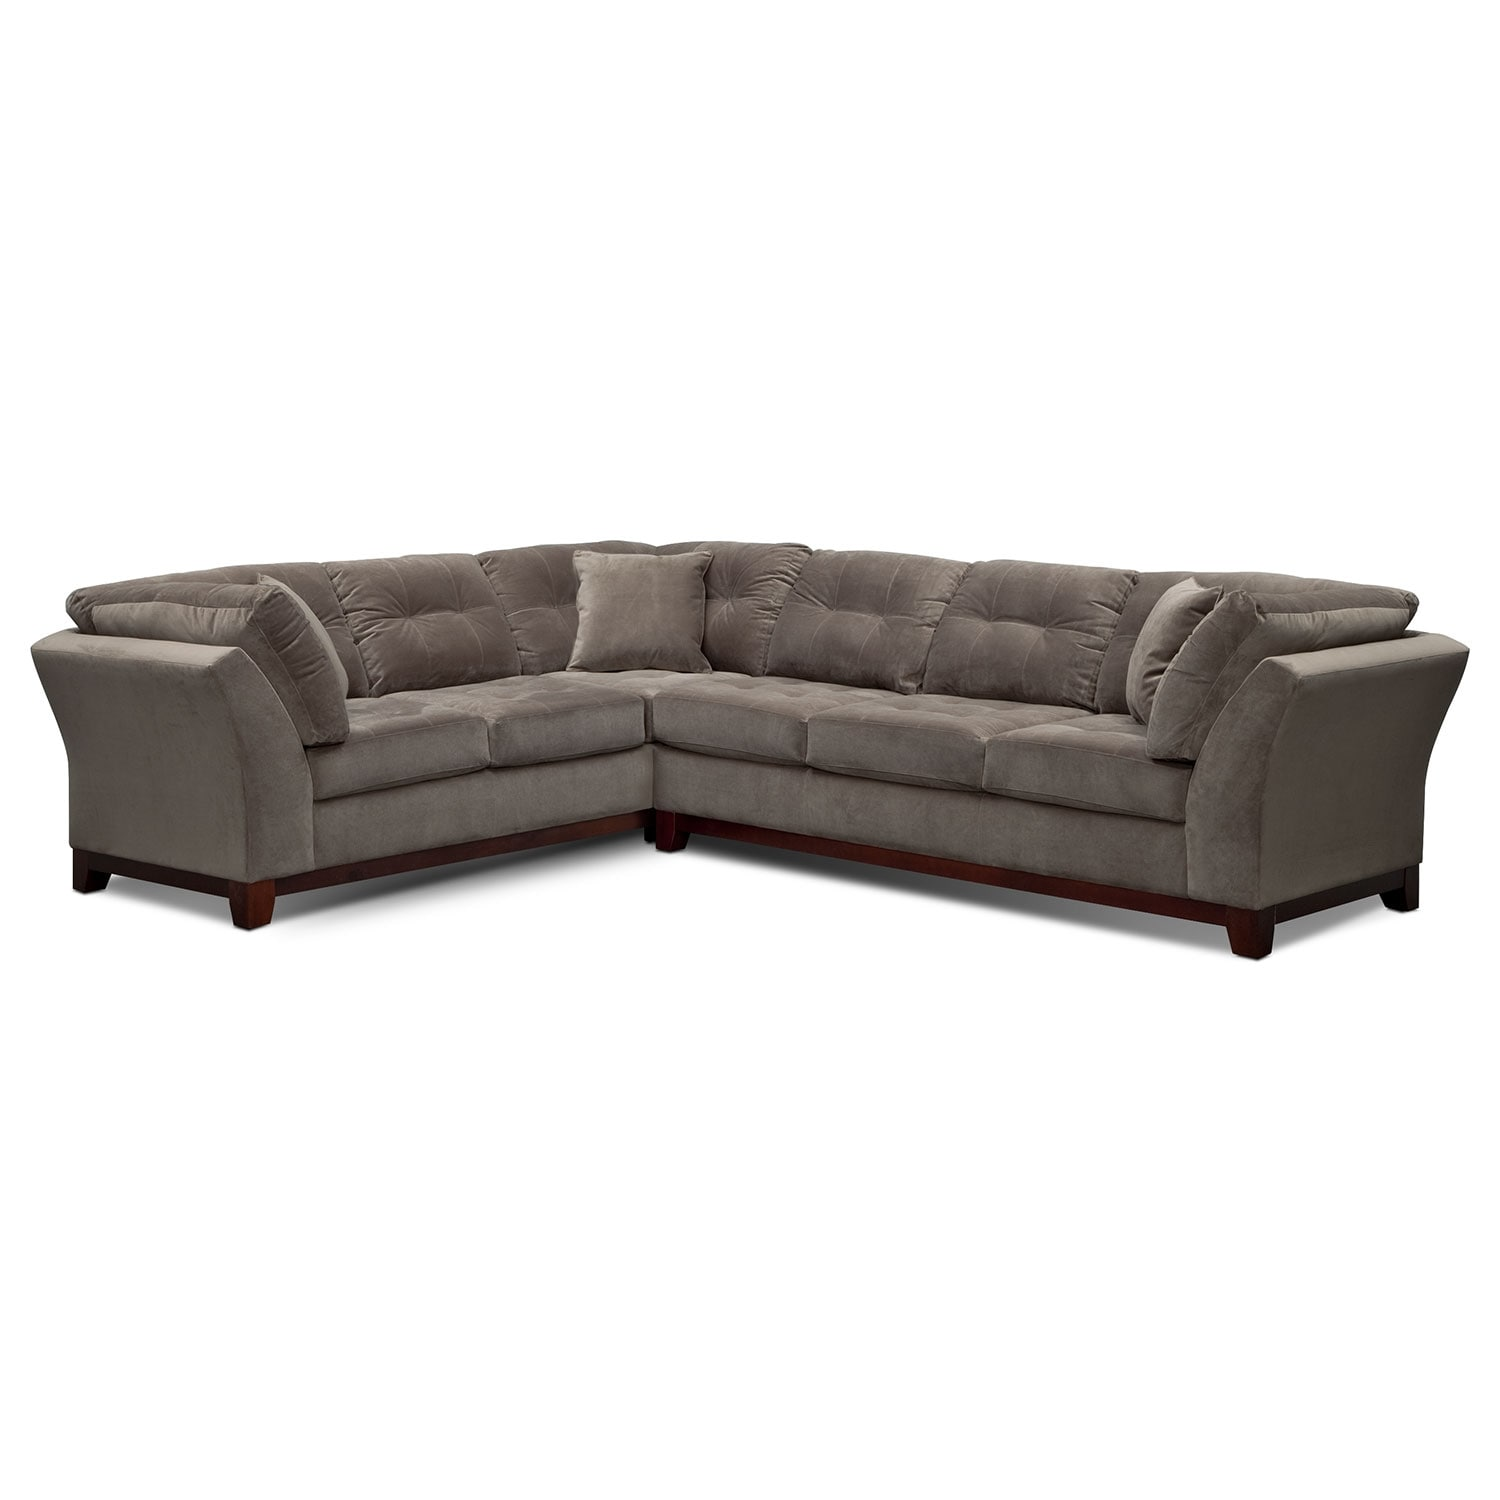 Sebring 2-Piece Sectional with Right-Facing Sofa - Gray